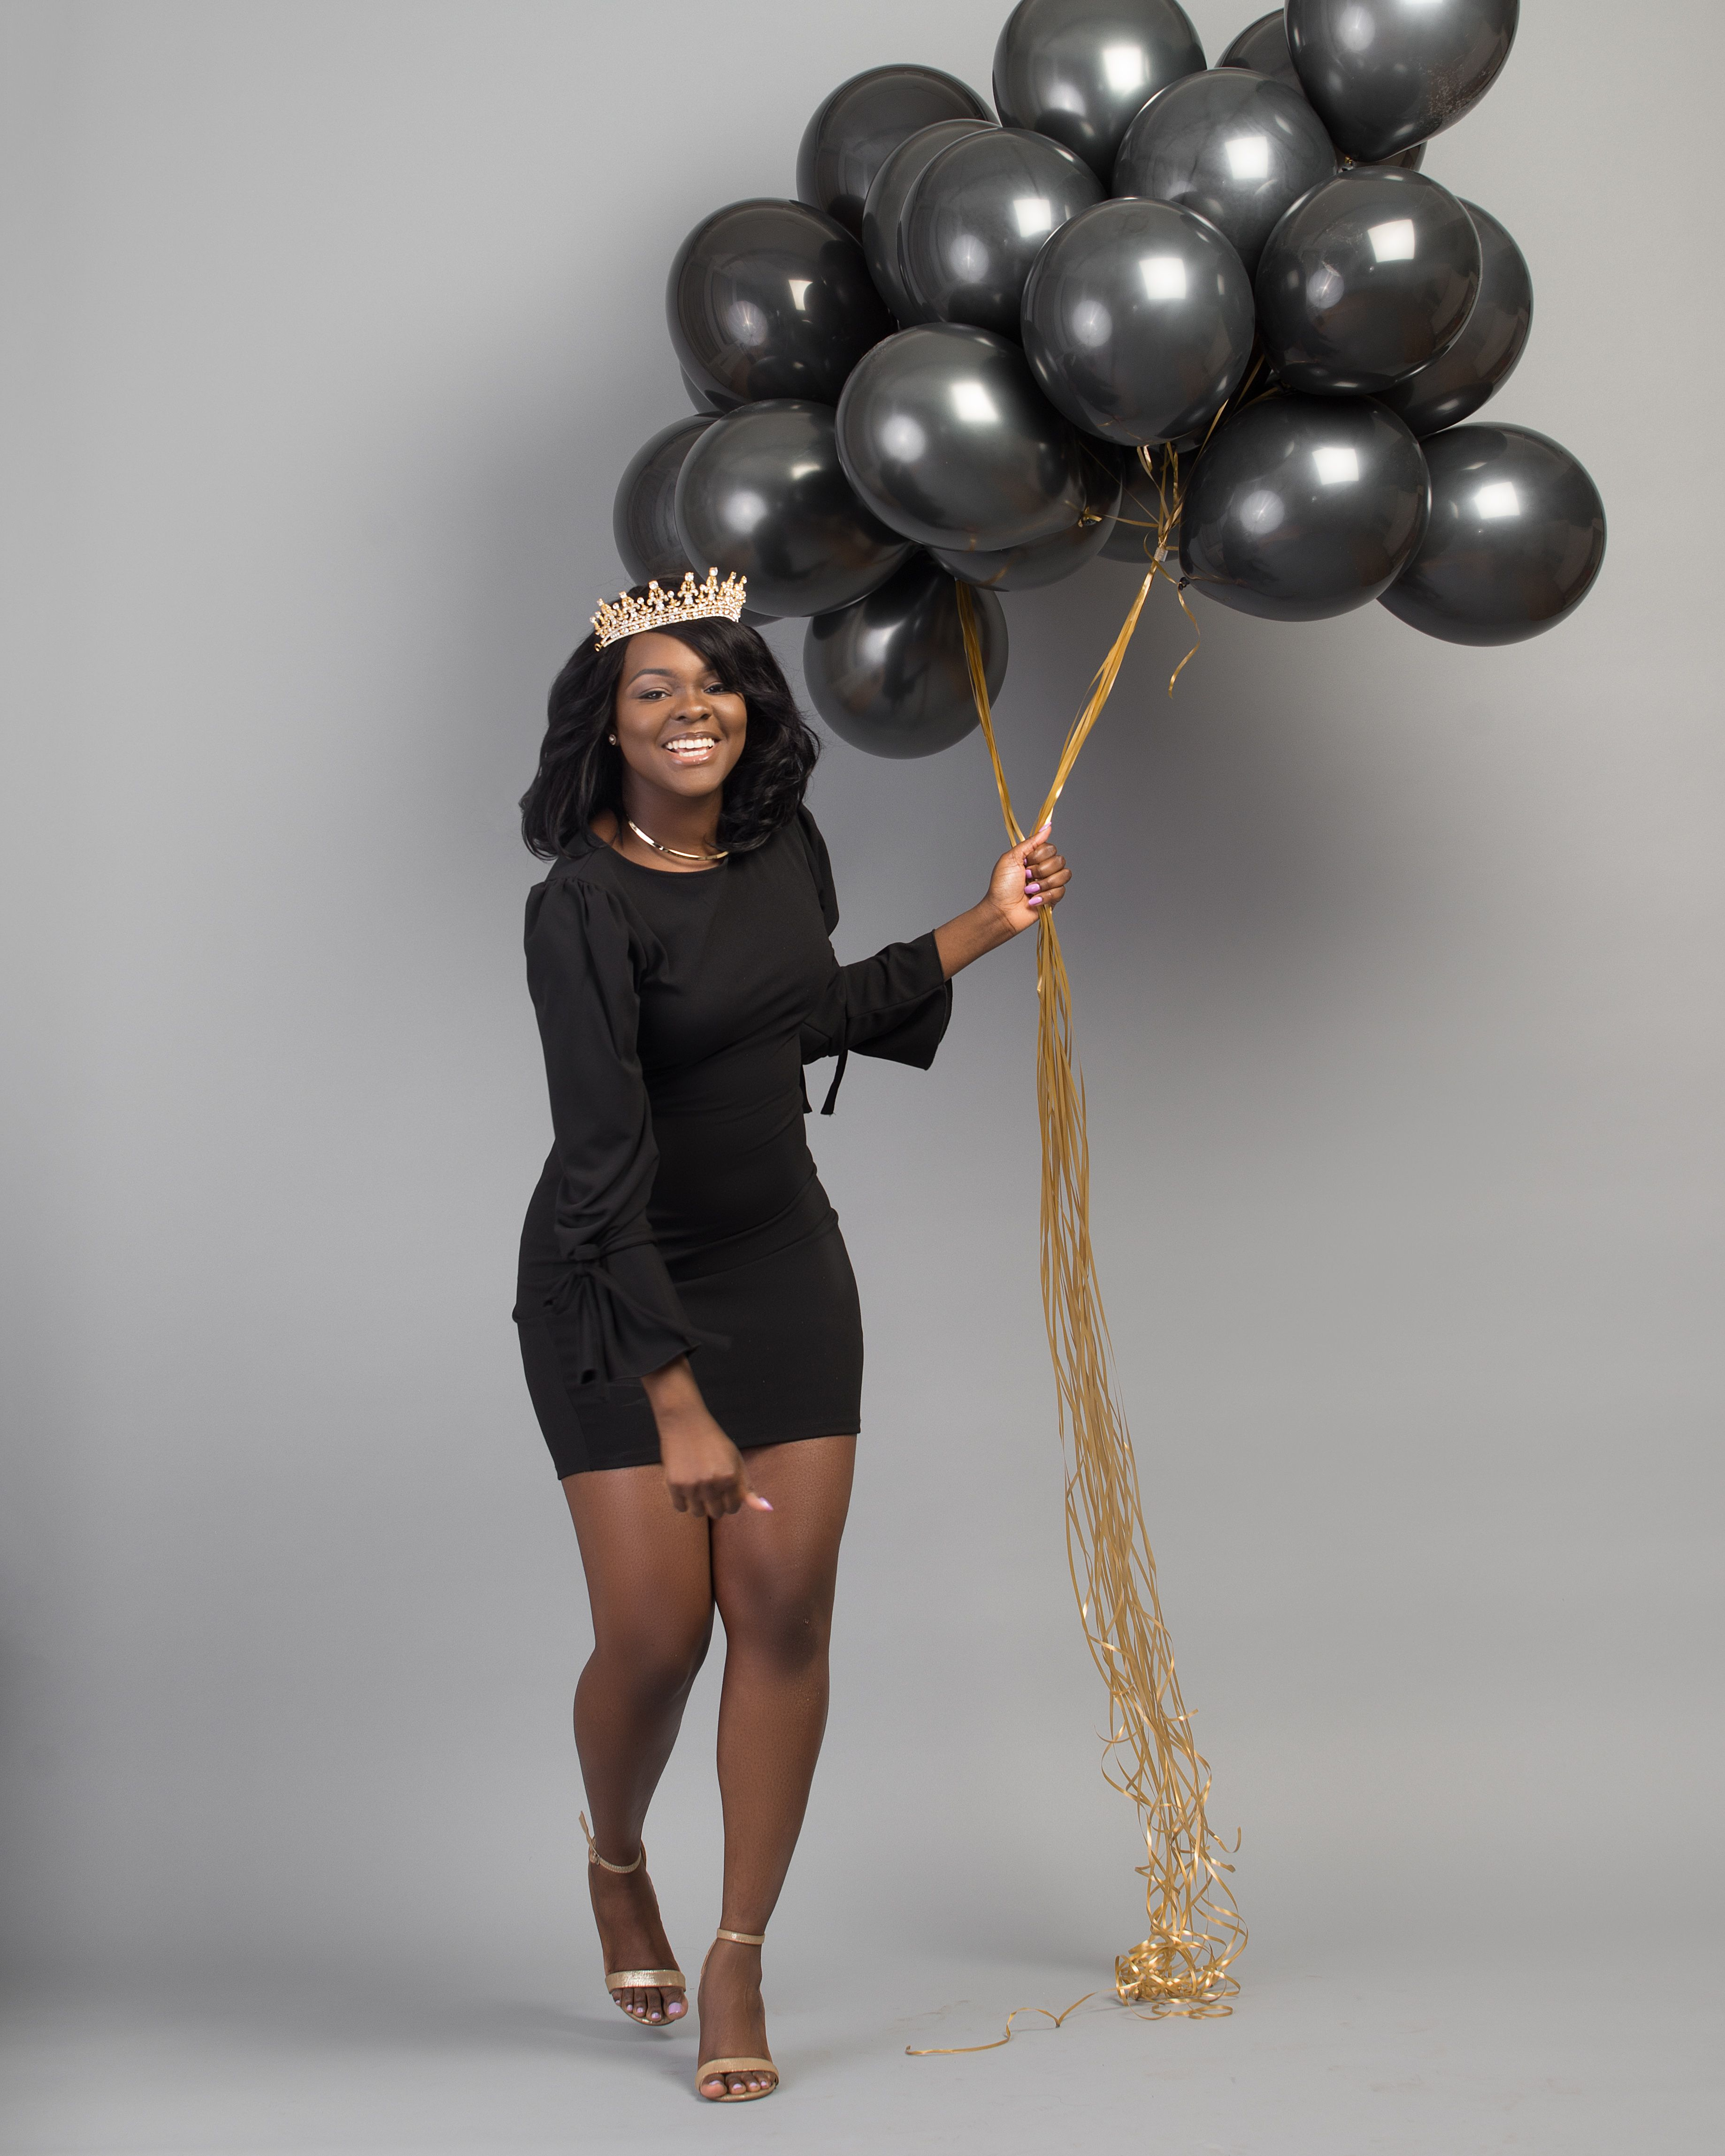 All Black With A Touch Of Gold 25th Birthday Photoshoot With